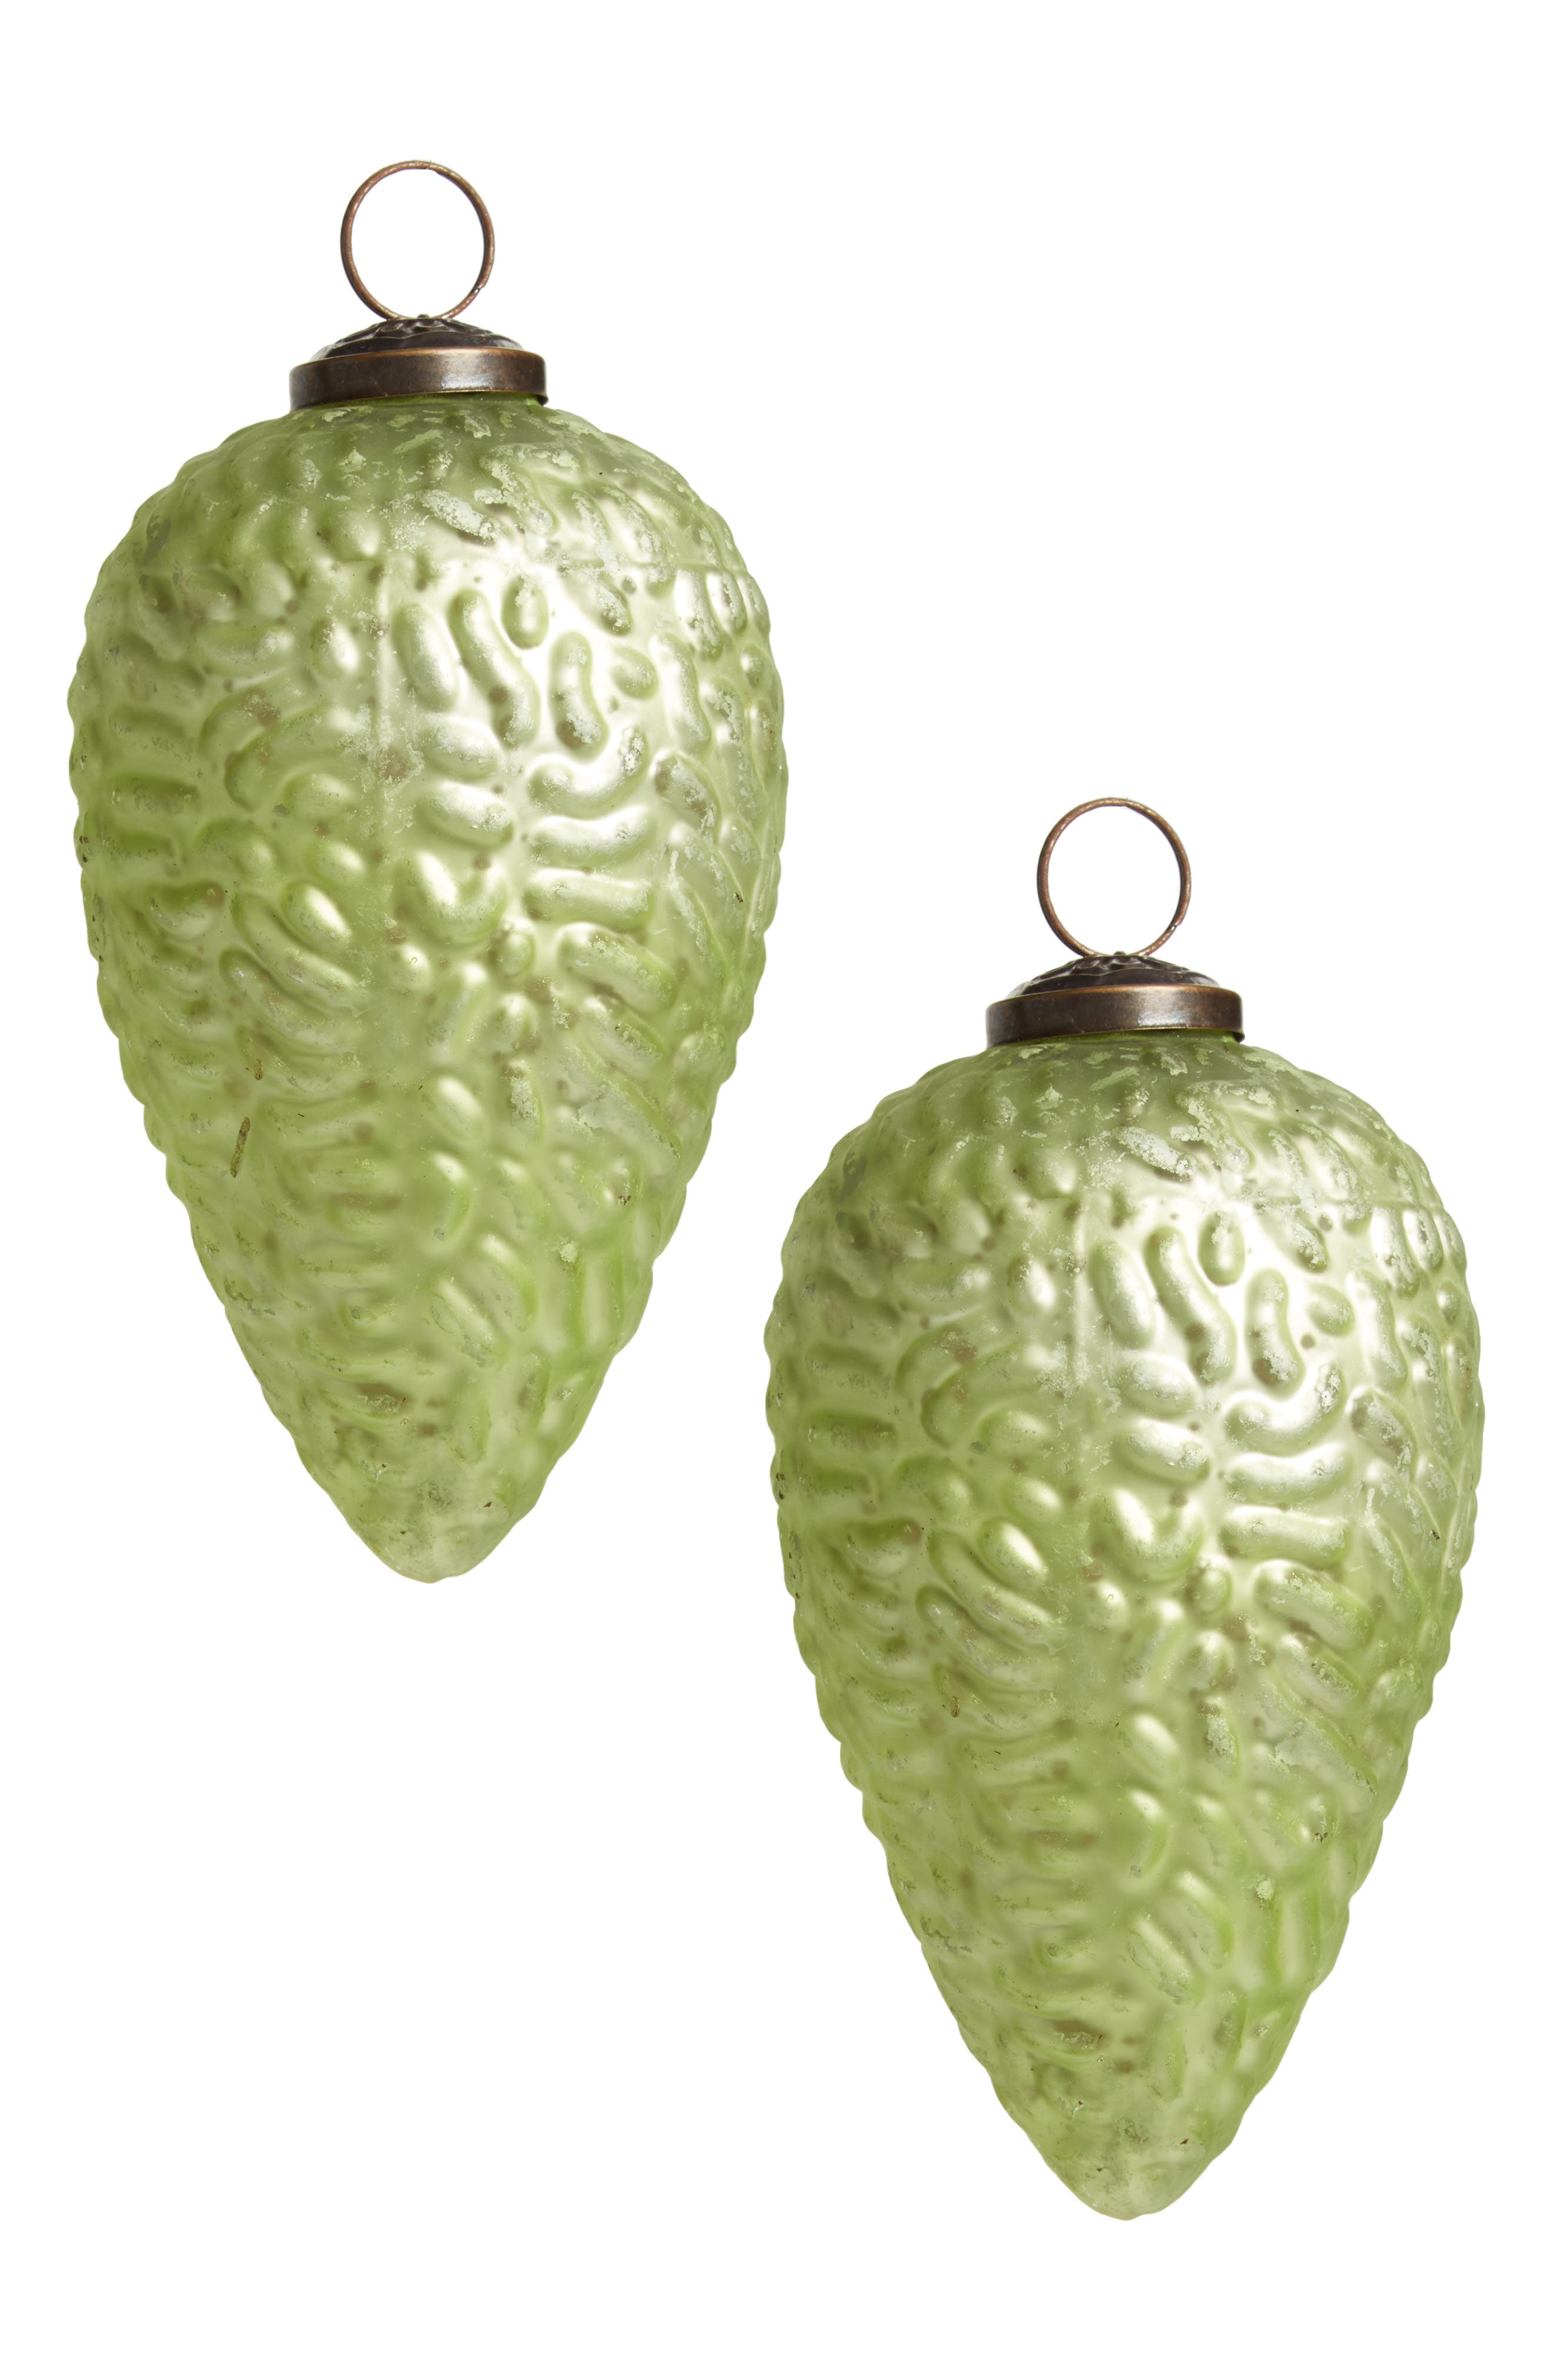 Arty Set of 2 Glass Ornaments